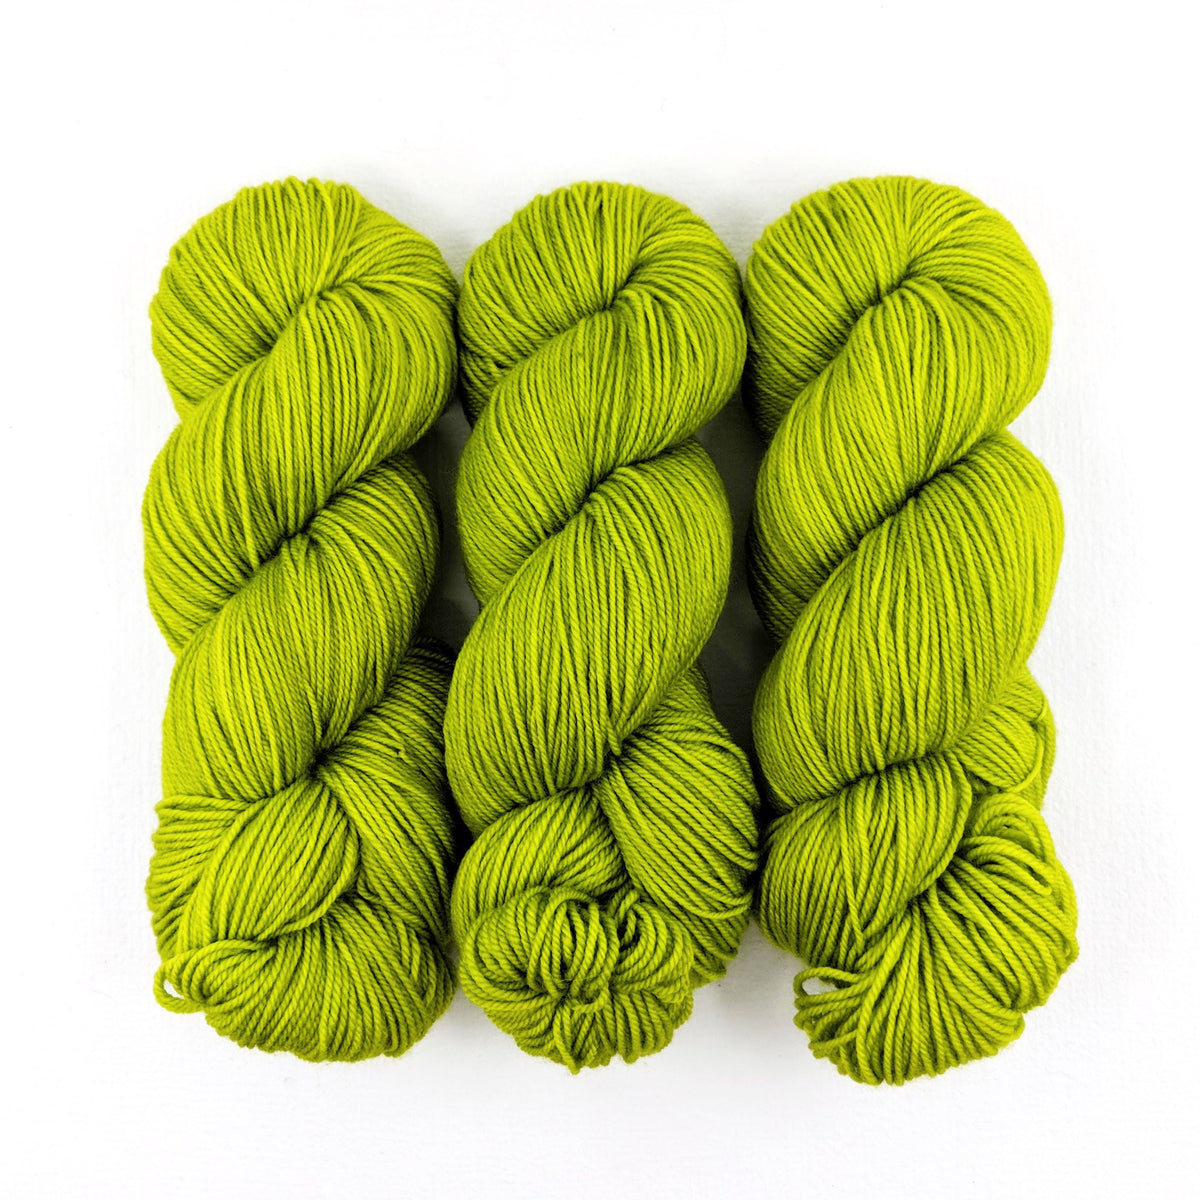 Uranium 235 in Worsted Weight